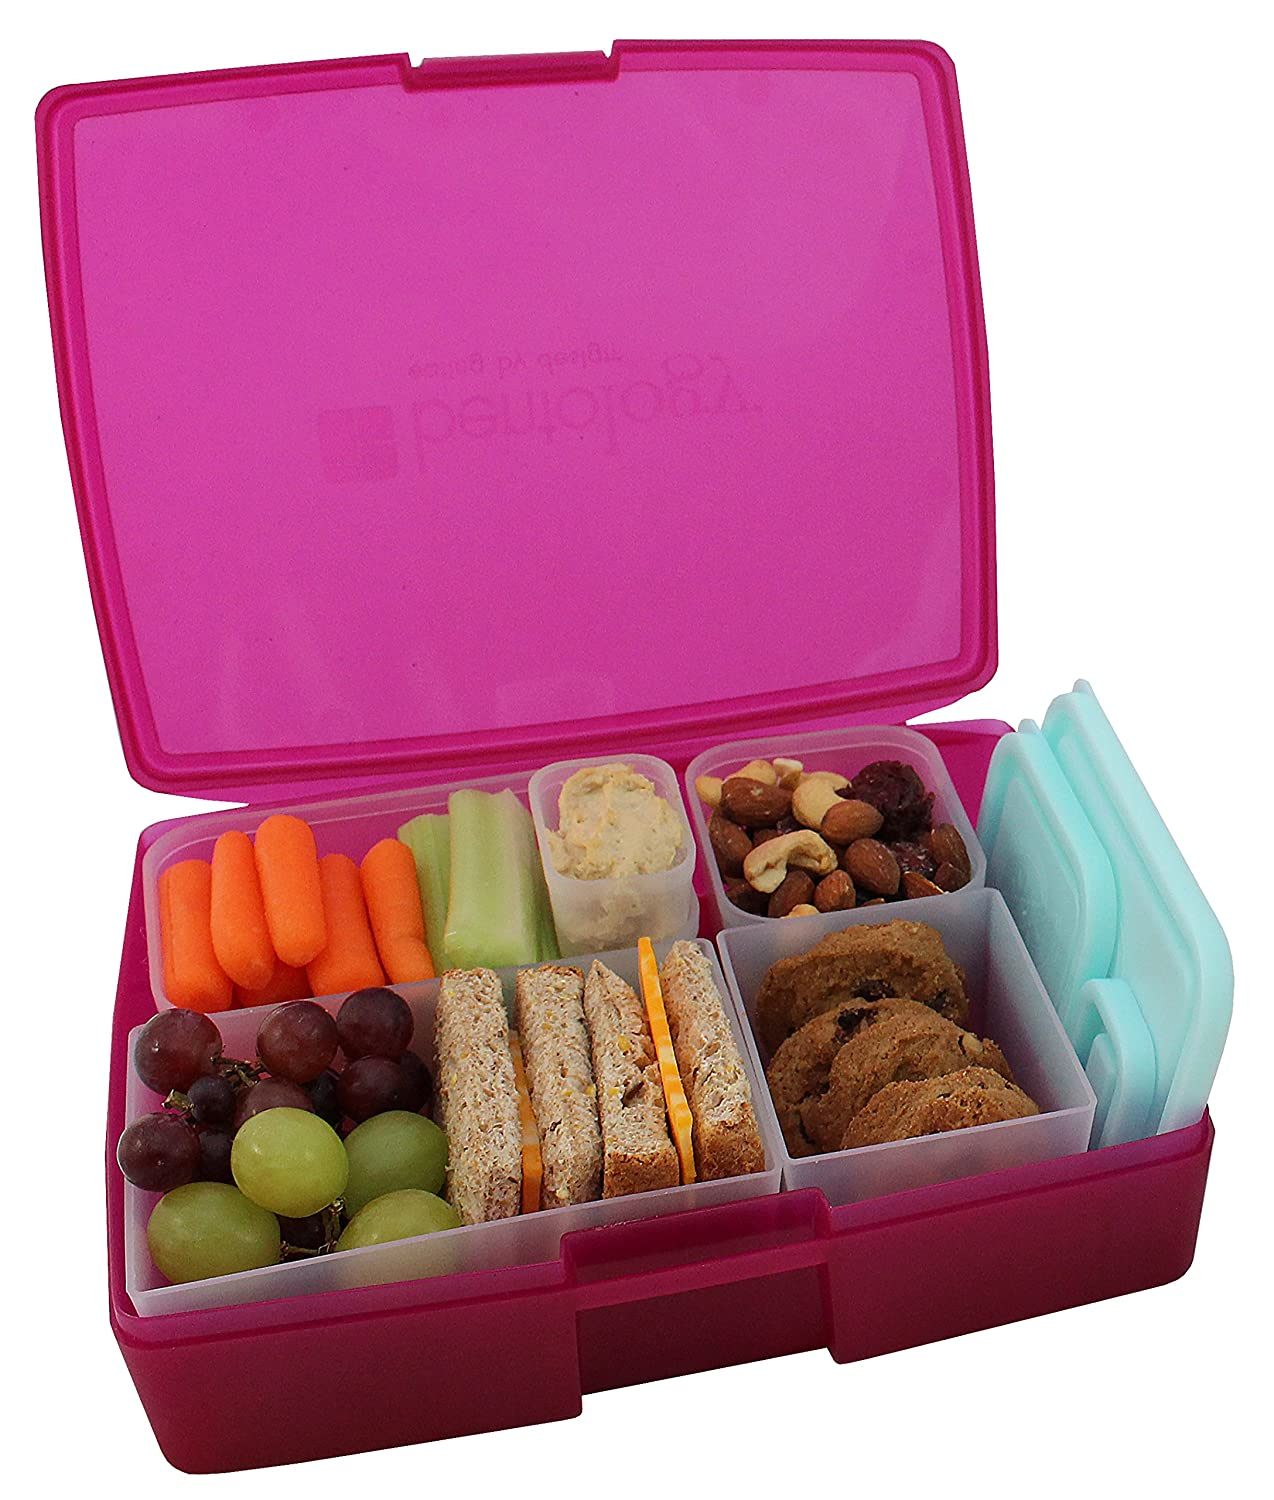 bento lunch box food saver storage removable 5 containers. Black Bedroom Furniture Sets. Home Design Ideas